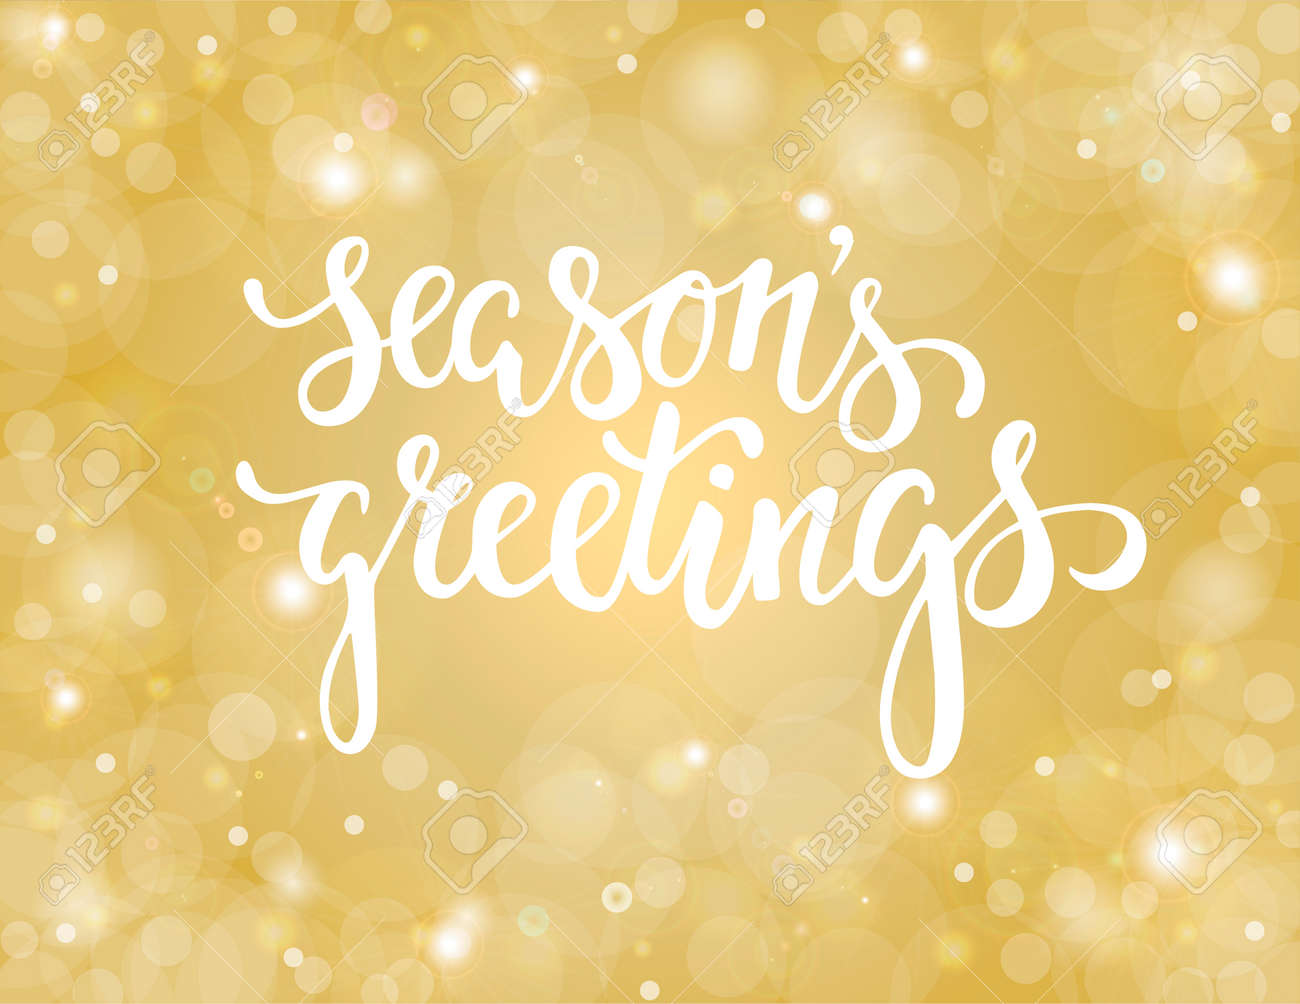 Handdrawn Lettering Seasons Greetings Design For Holiday Greeting